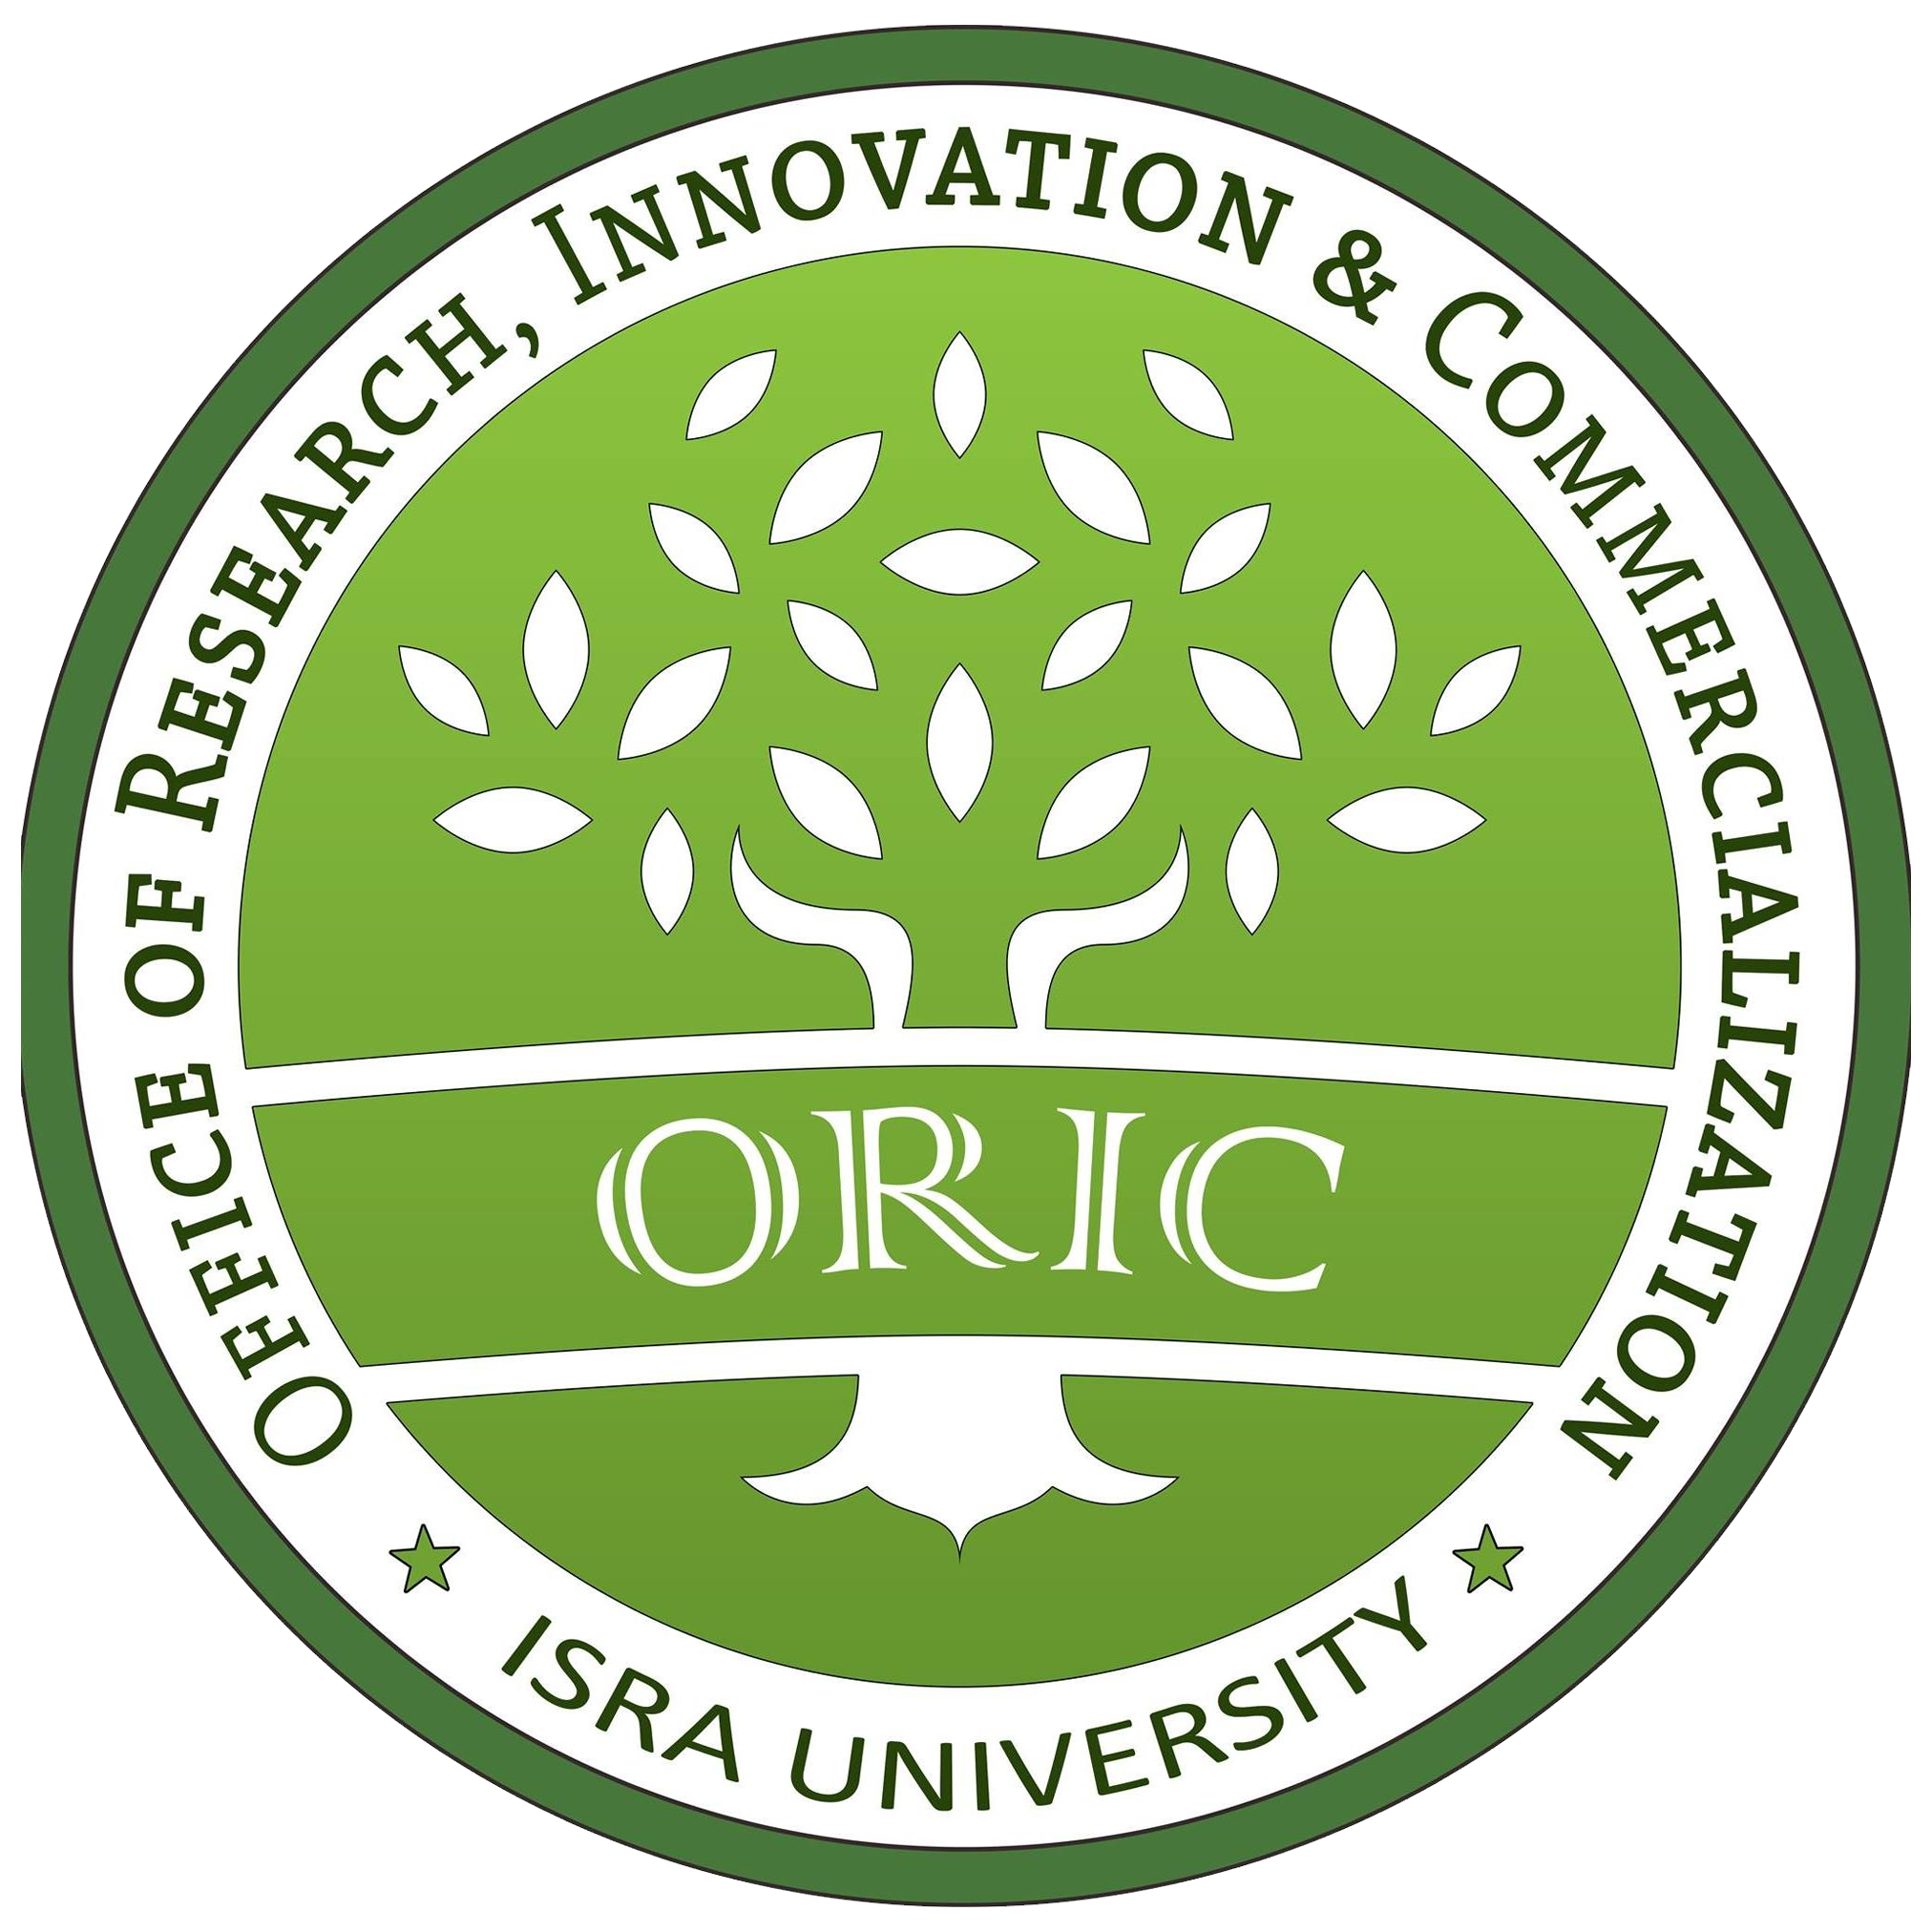 Office of Research, Innovation & Commercialization